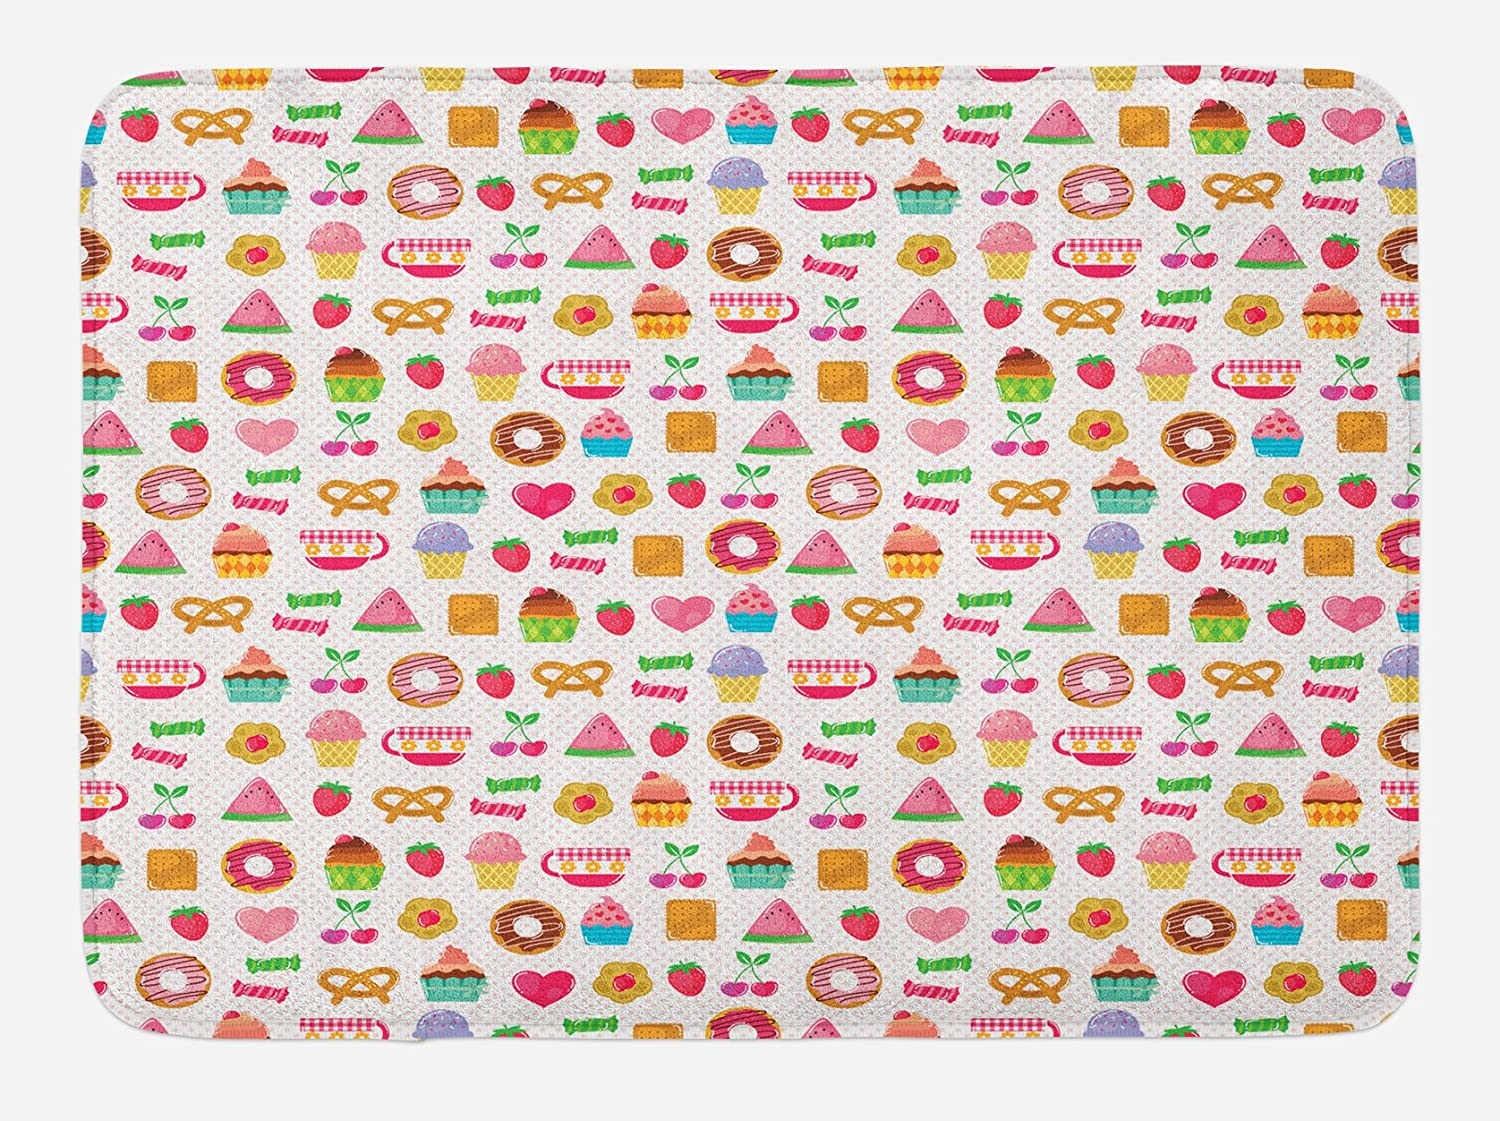 Ambesonne Tea Party Bath Mat, Sweets Candies Cookies Fruit and Other Things Cheerful Composition, Plush Bathroom Decor Mat with Non Slip Backing, 29.5